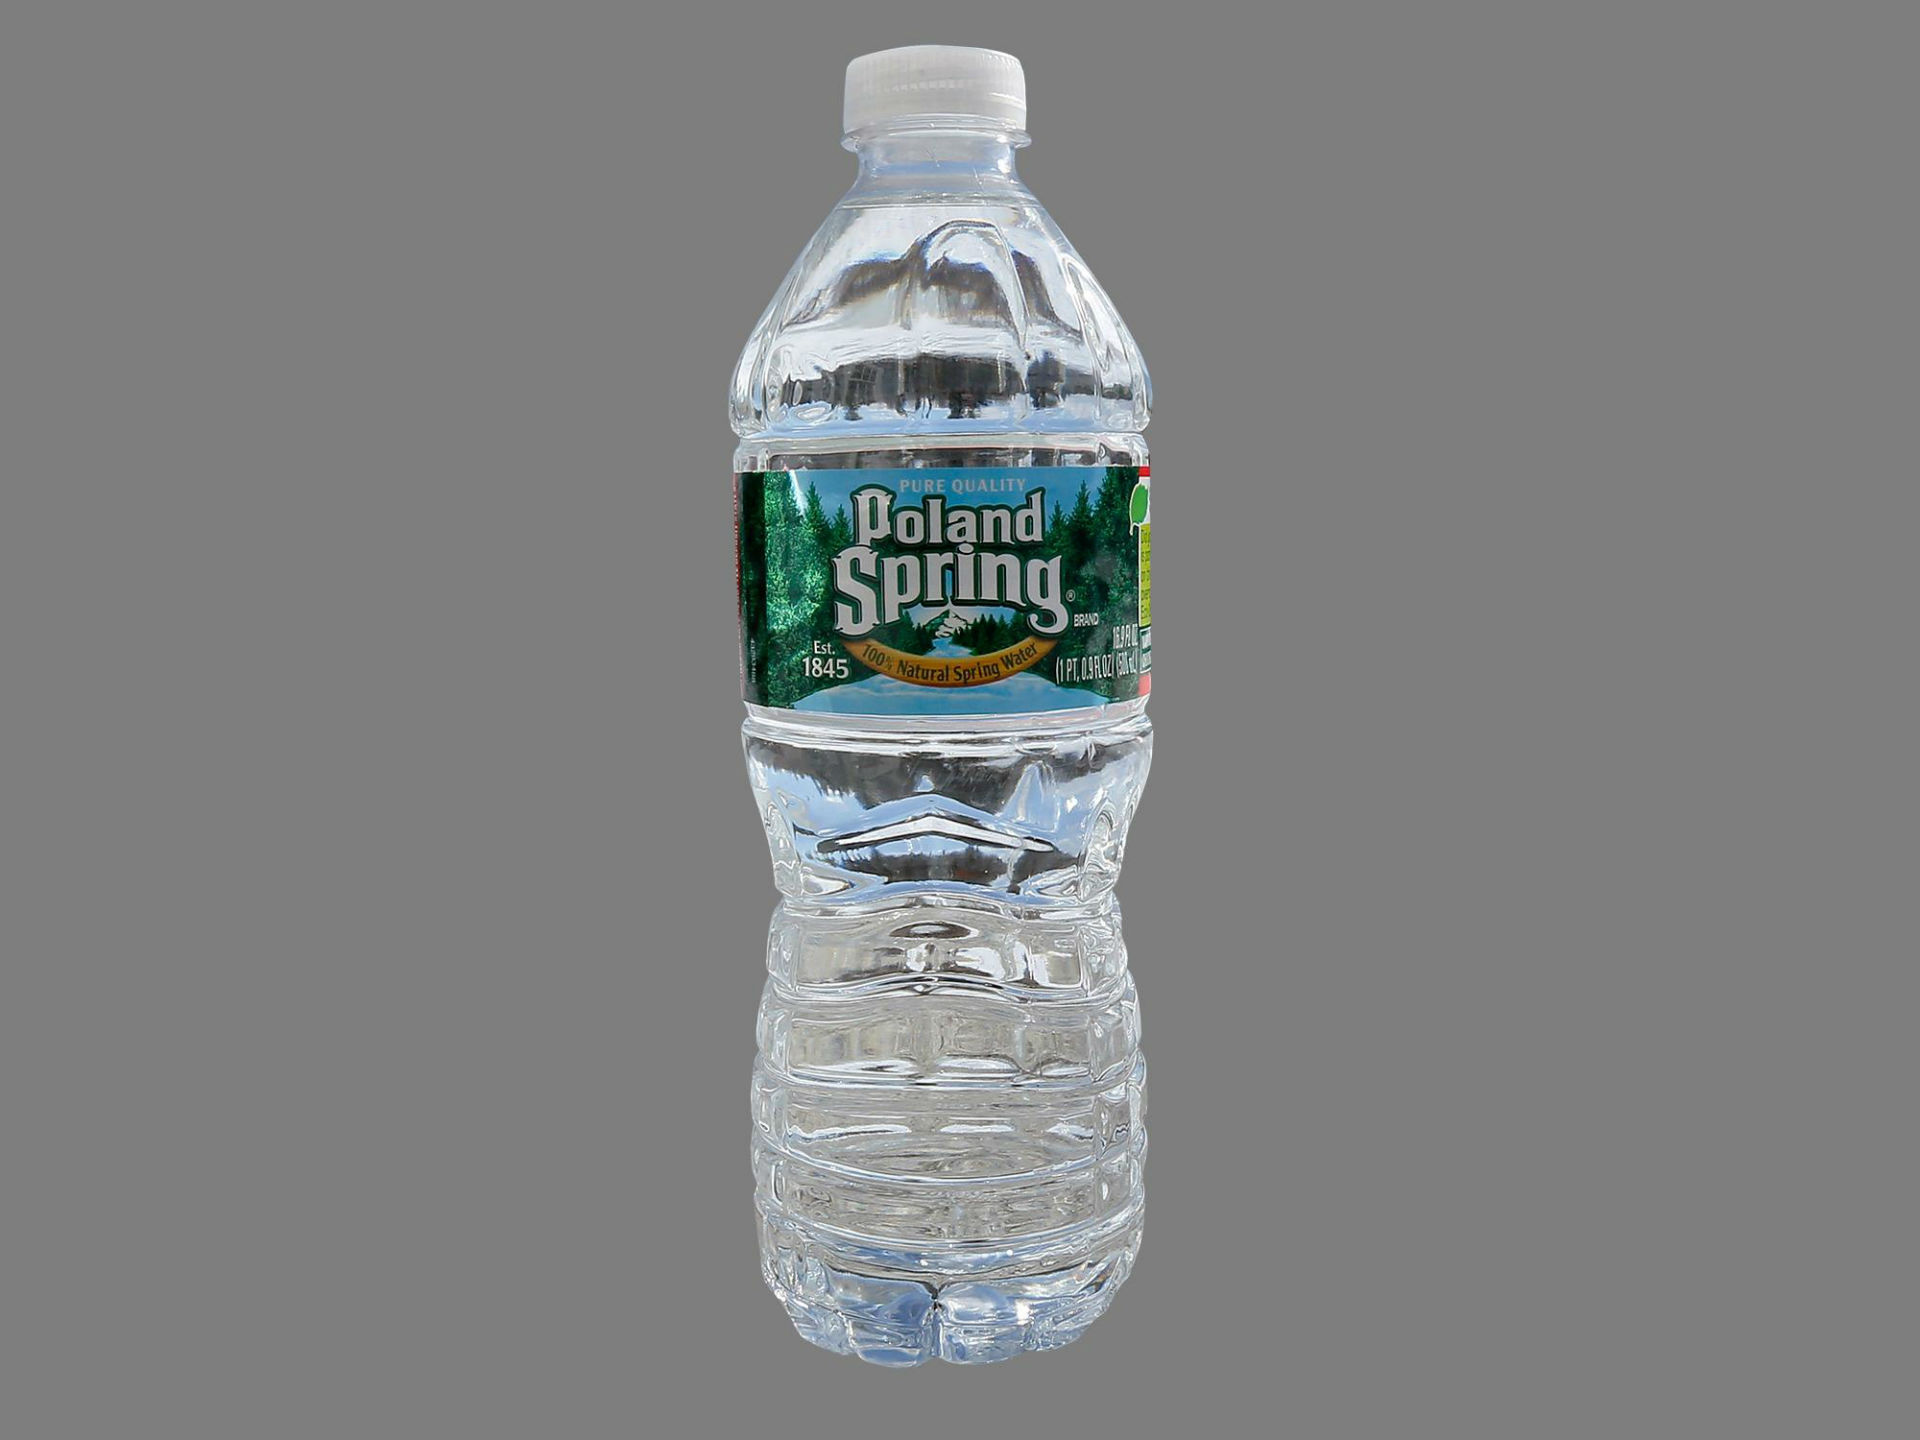 Class-action lawsuit against Poland Spring gets new life